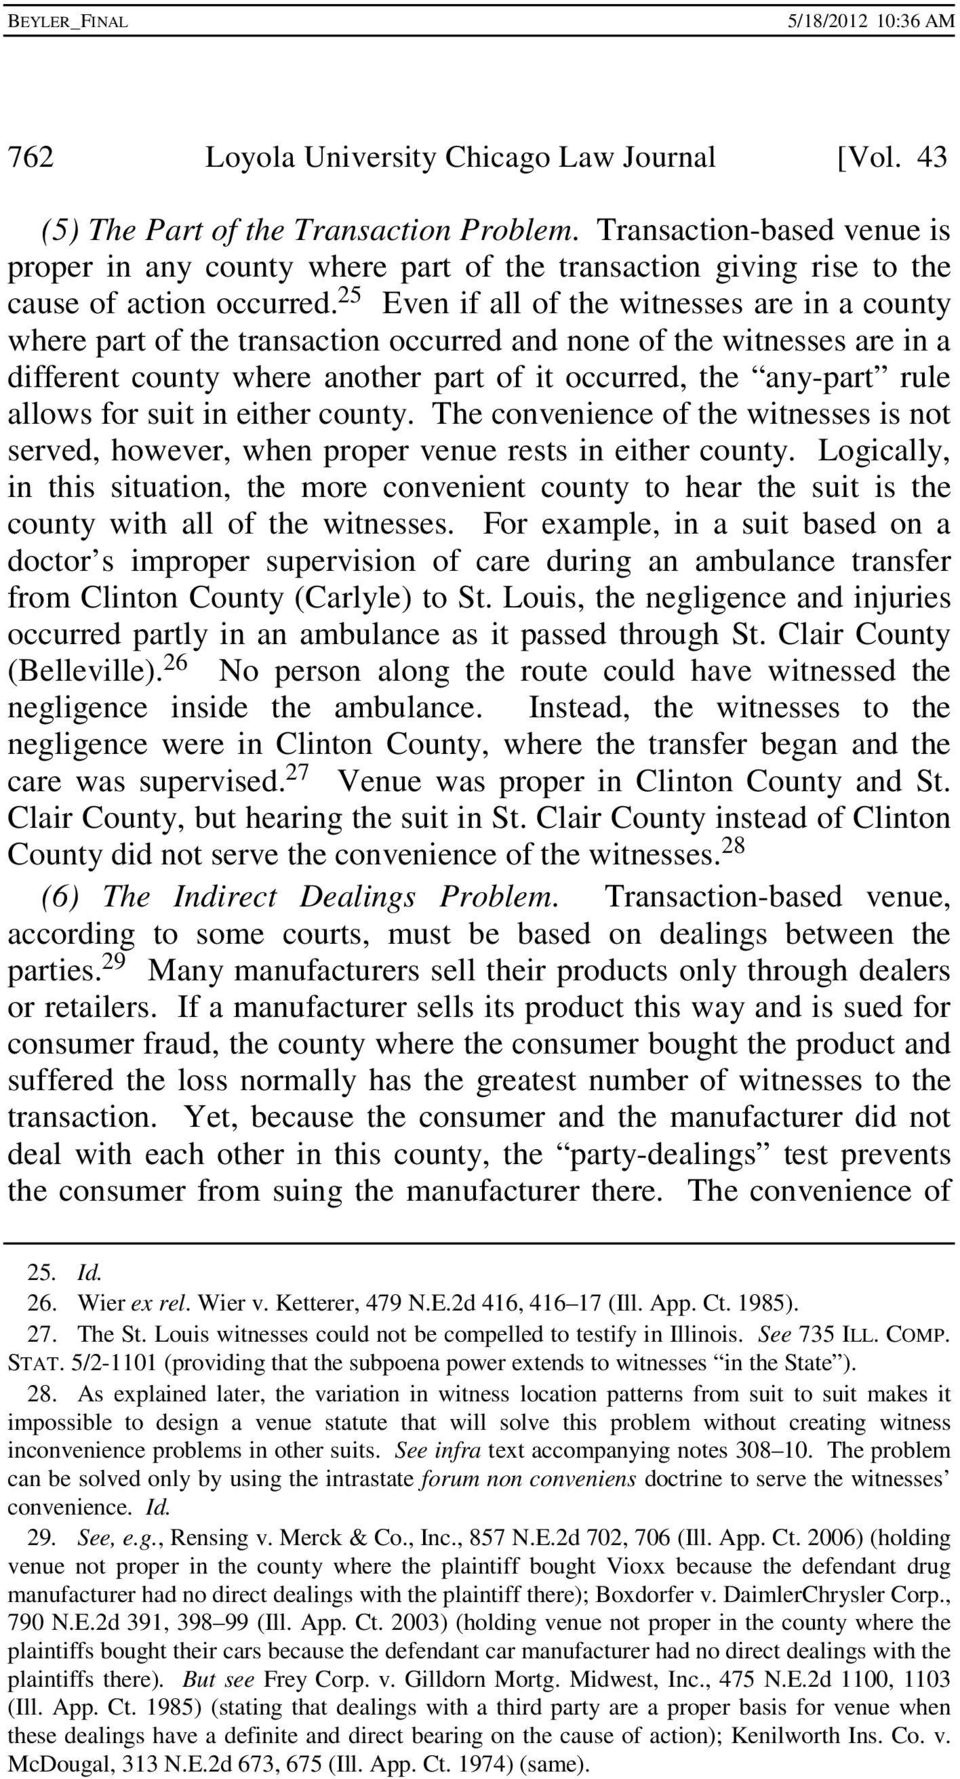 25 Even if all of the witnesses are in a county where part of the transaction occurred and none of the witnesses are in a different county where another part of it occurred, the any-part rule allows